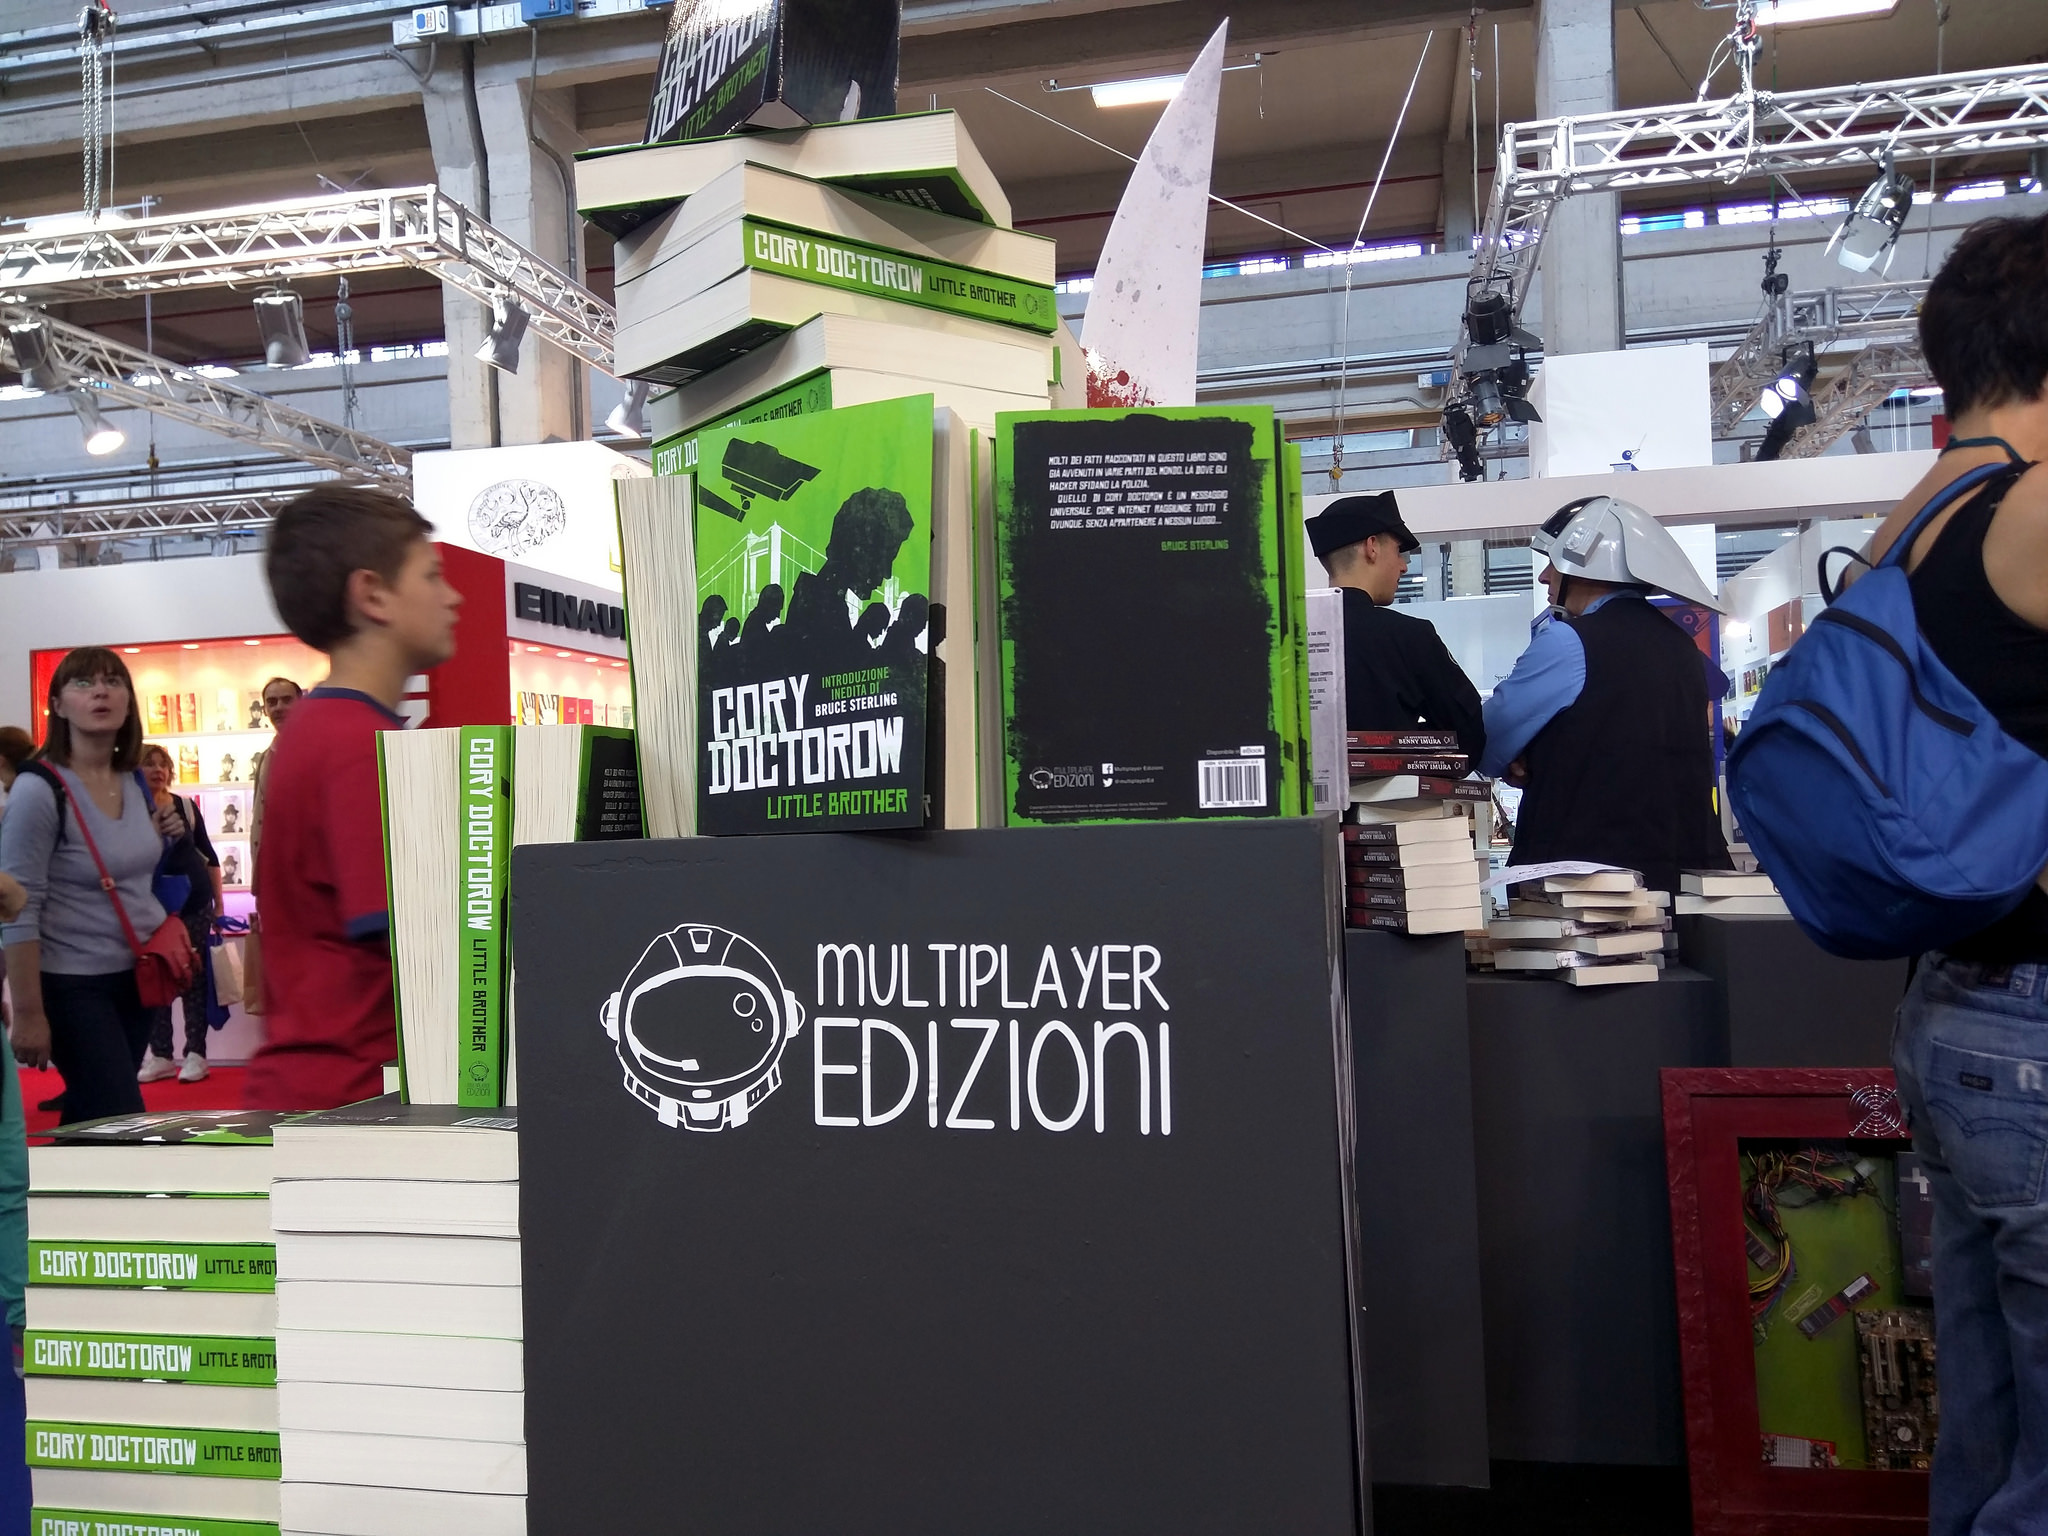 Stack of Little Brothers, Multiplayer Editions booth, Book Fair, Turin, Italy